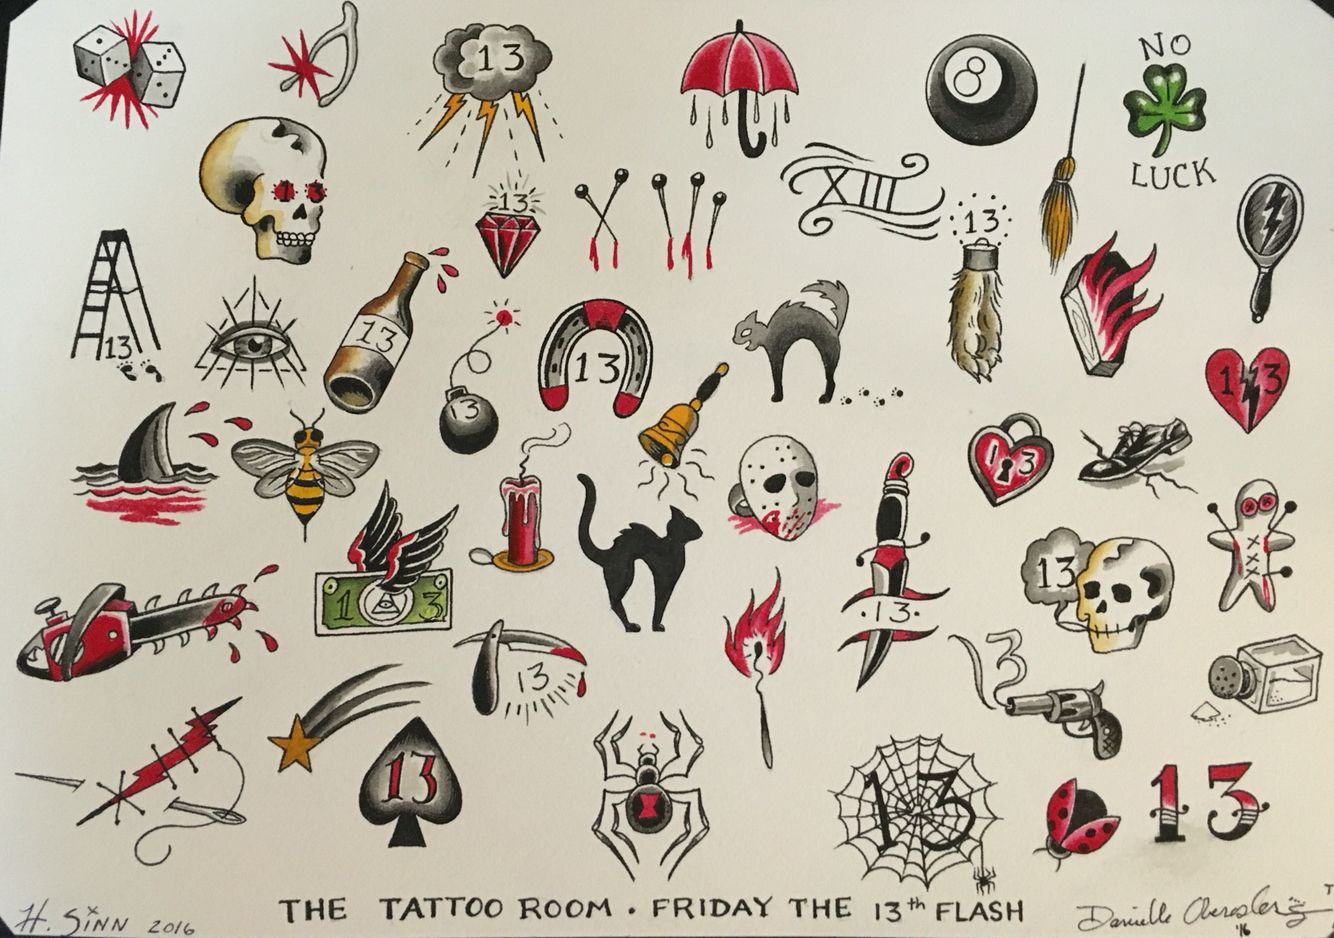 We Are Doing 31 Tattoos This Friday May 13th 2016 The Tattoo